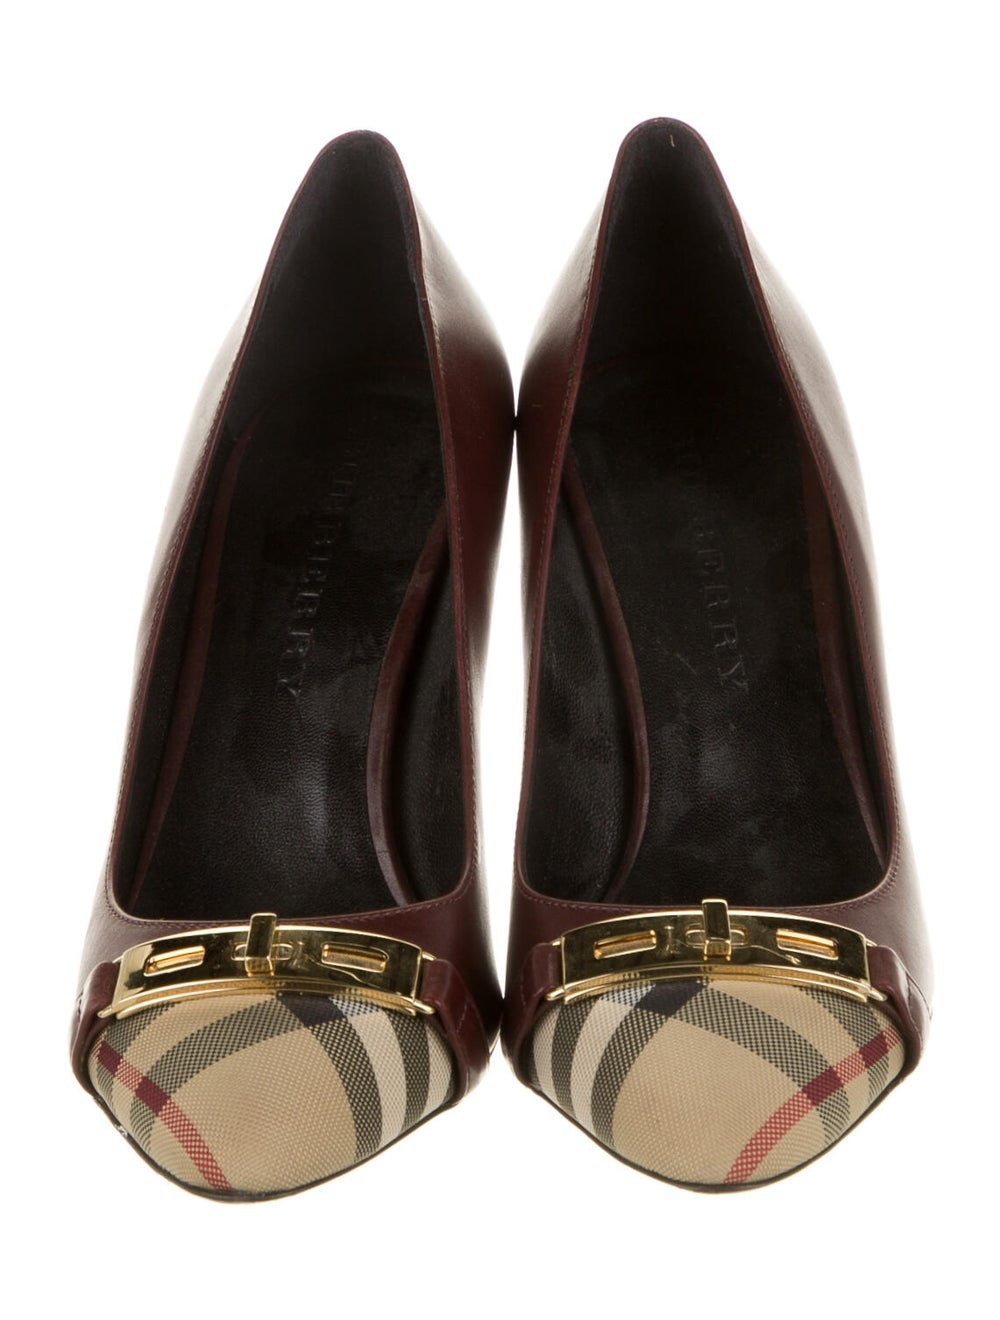 Burberry Leather Pumps - image 3